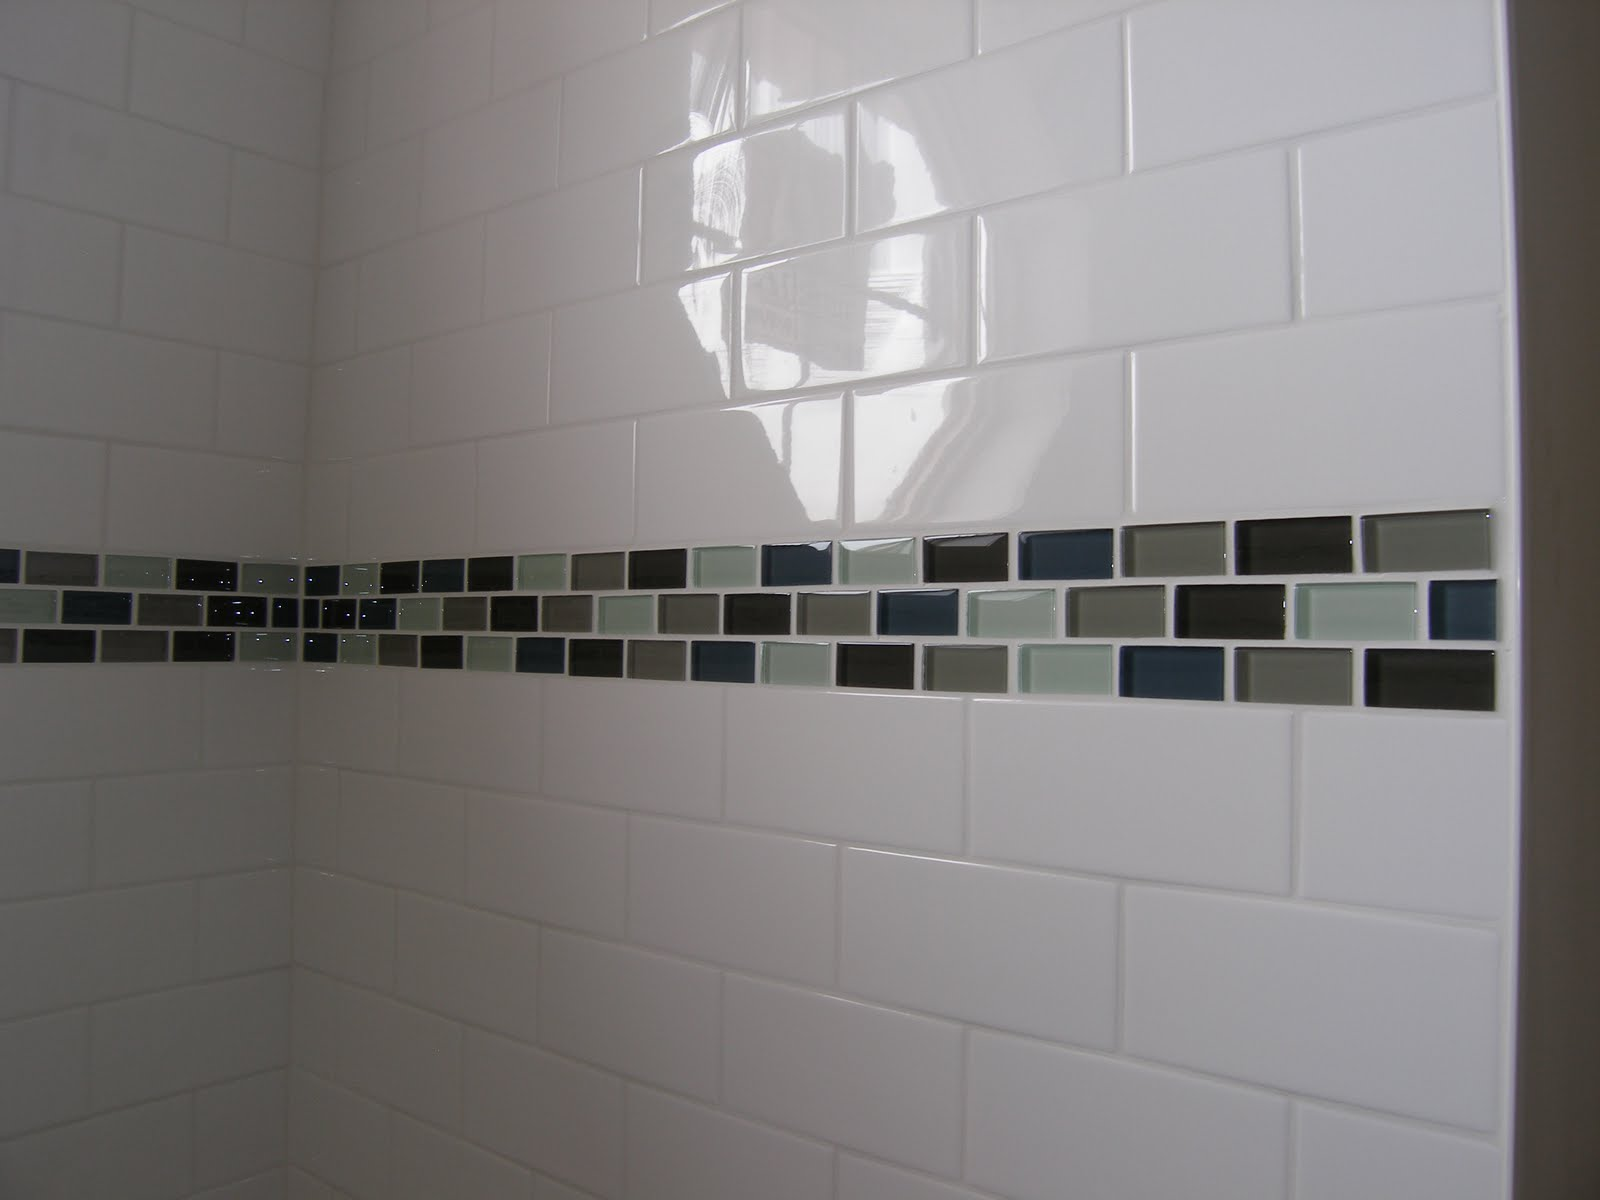 Bathroom wall tile pattern bathroom tile for Bathroom tile designs 2012